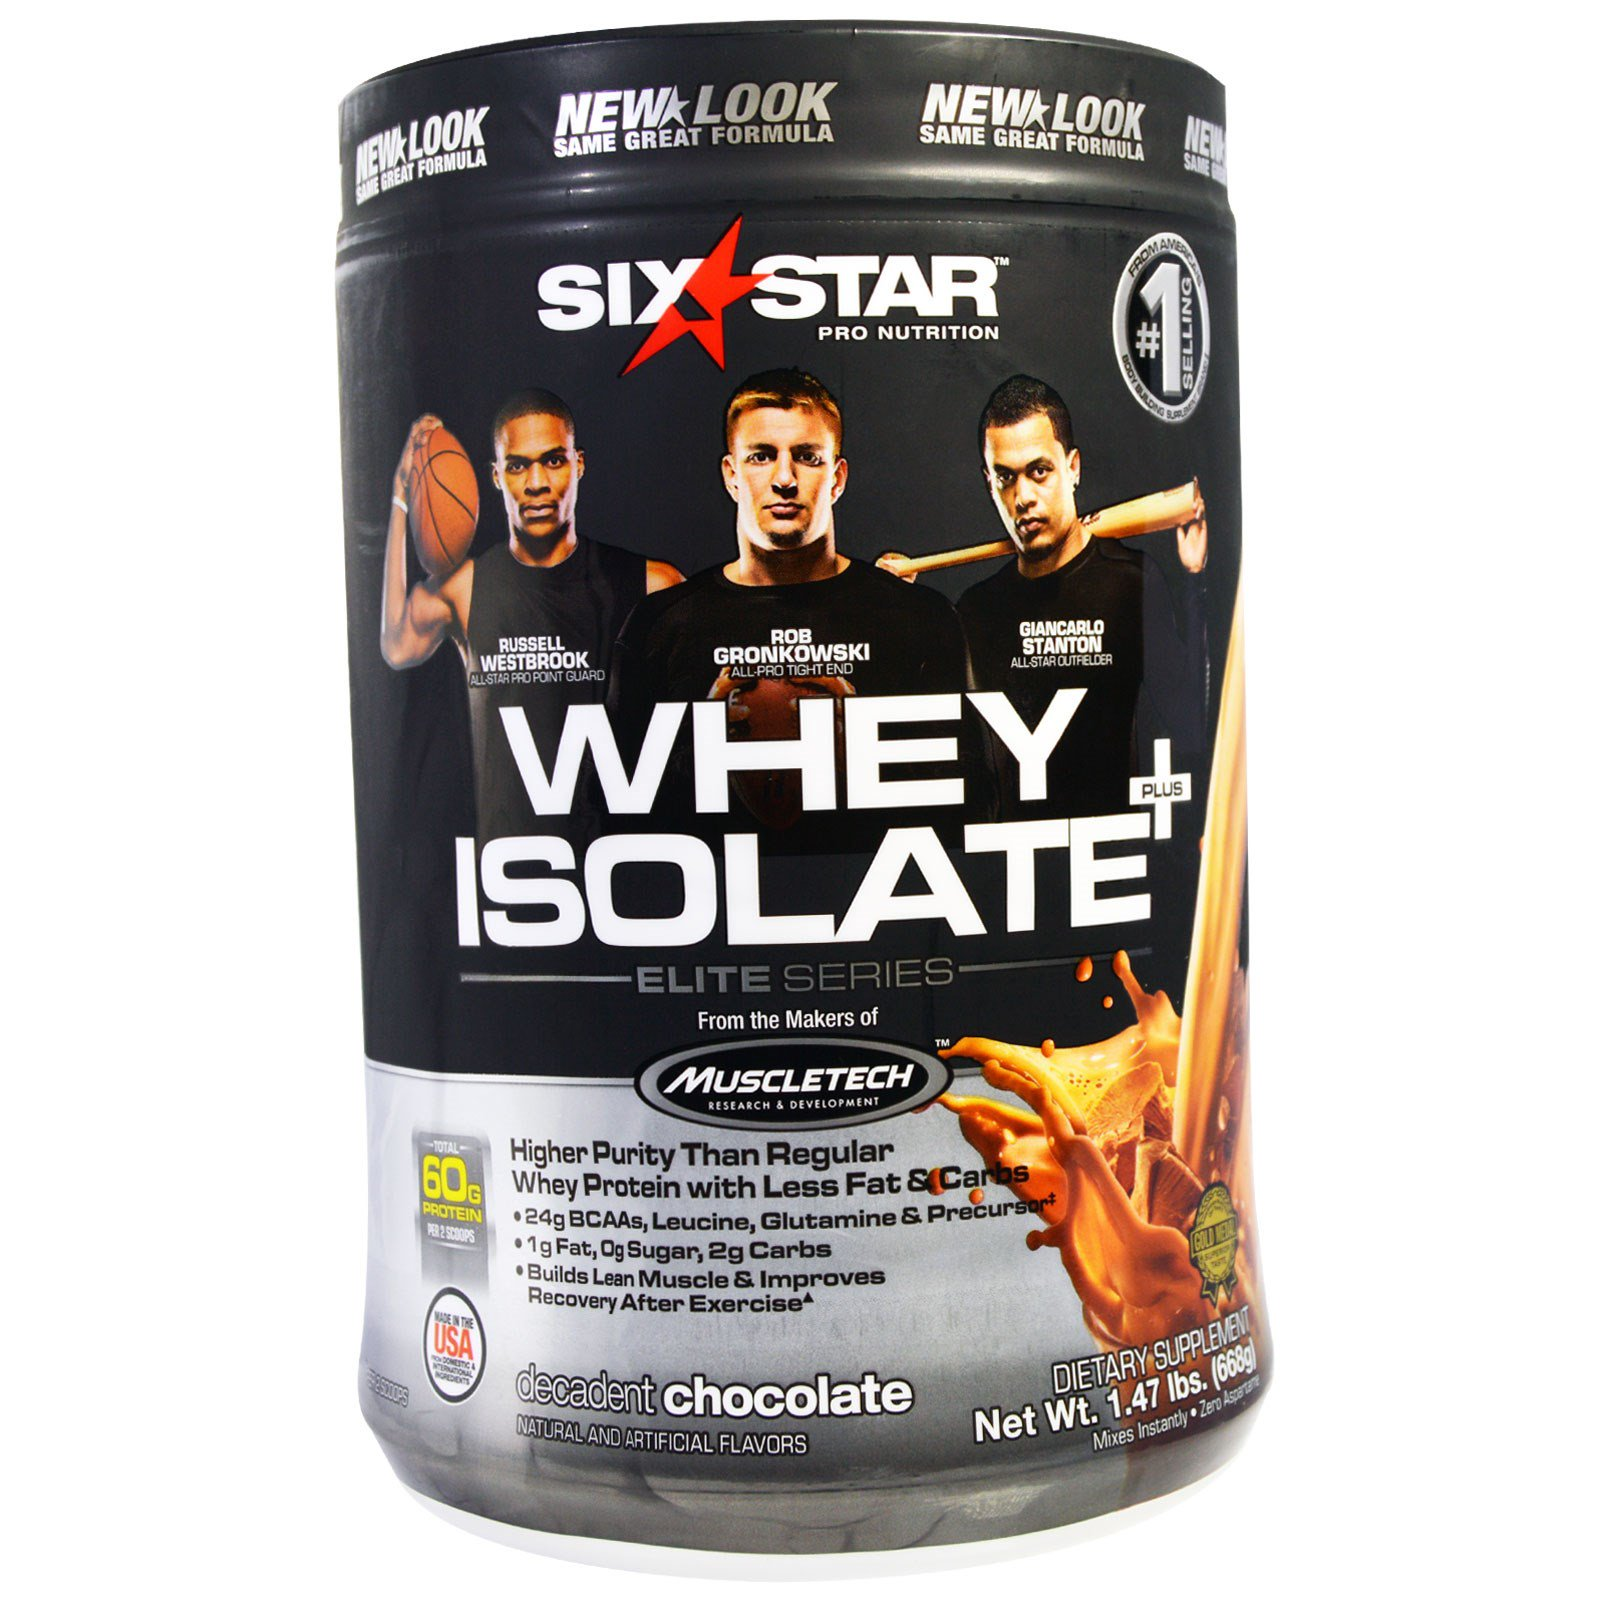 Six Star Pro Nutrition, Whey Isolate